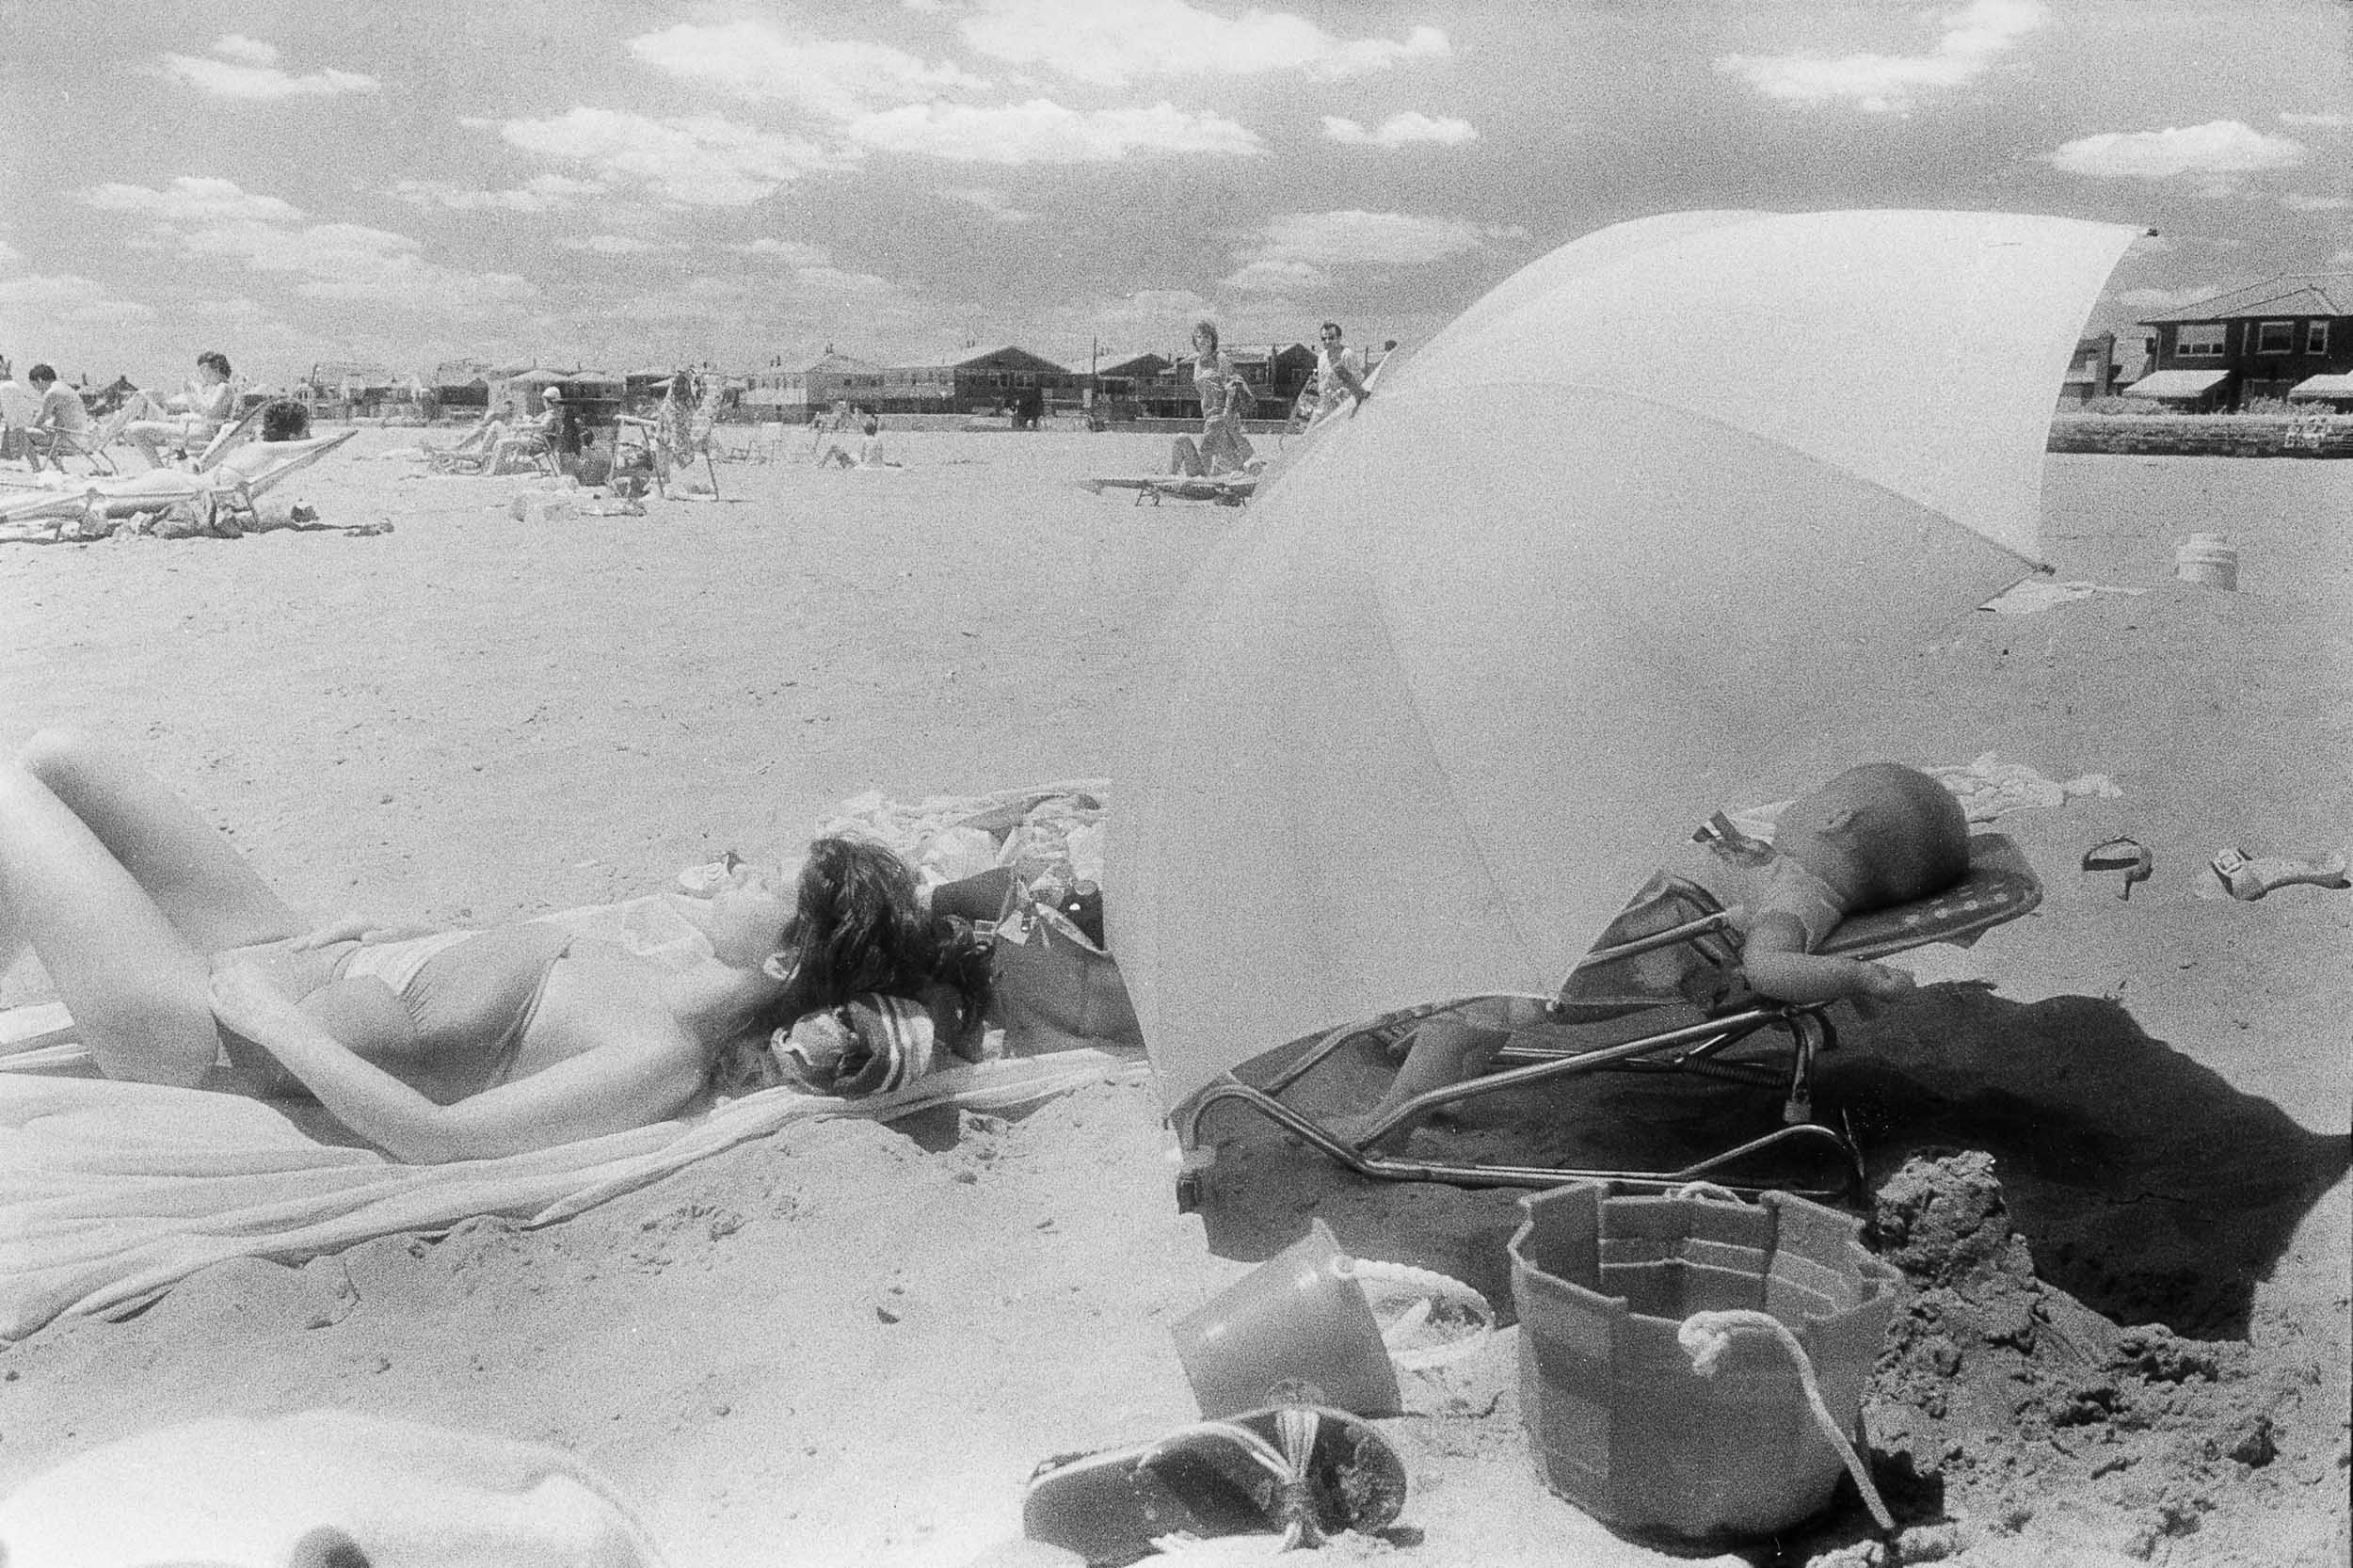 Barbara Alper- Photo of women and baby sleeping under umbrella at Rockaway Beach NYC